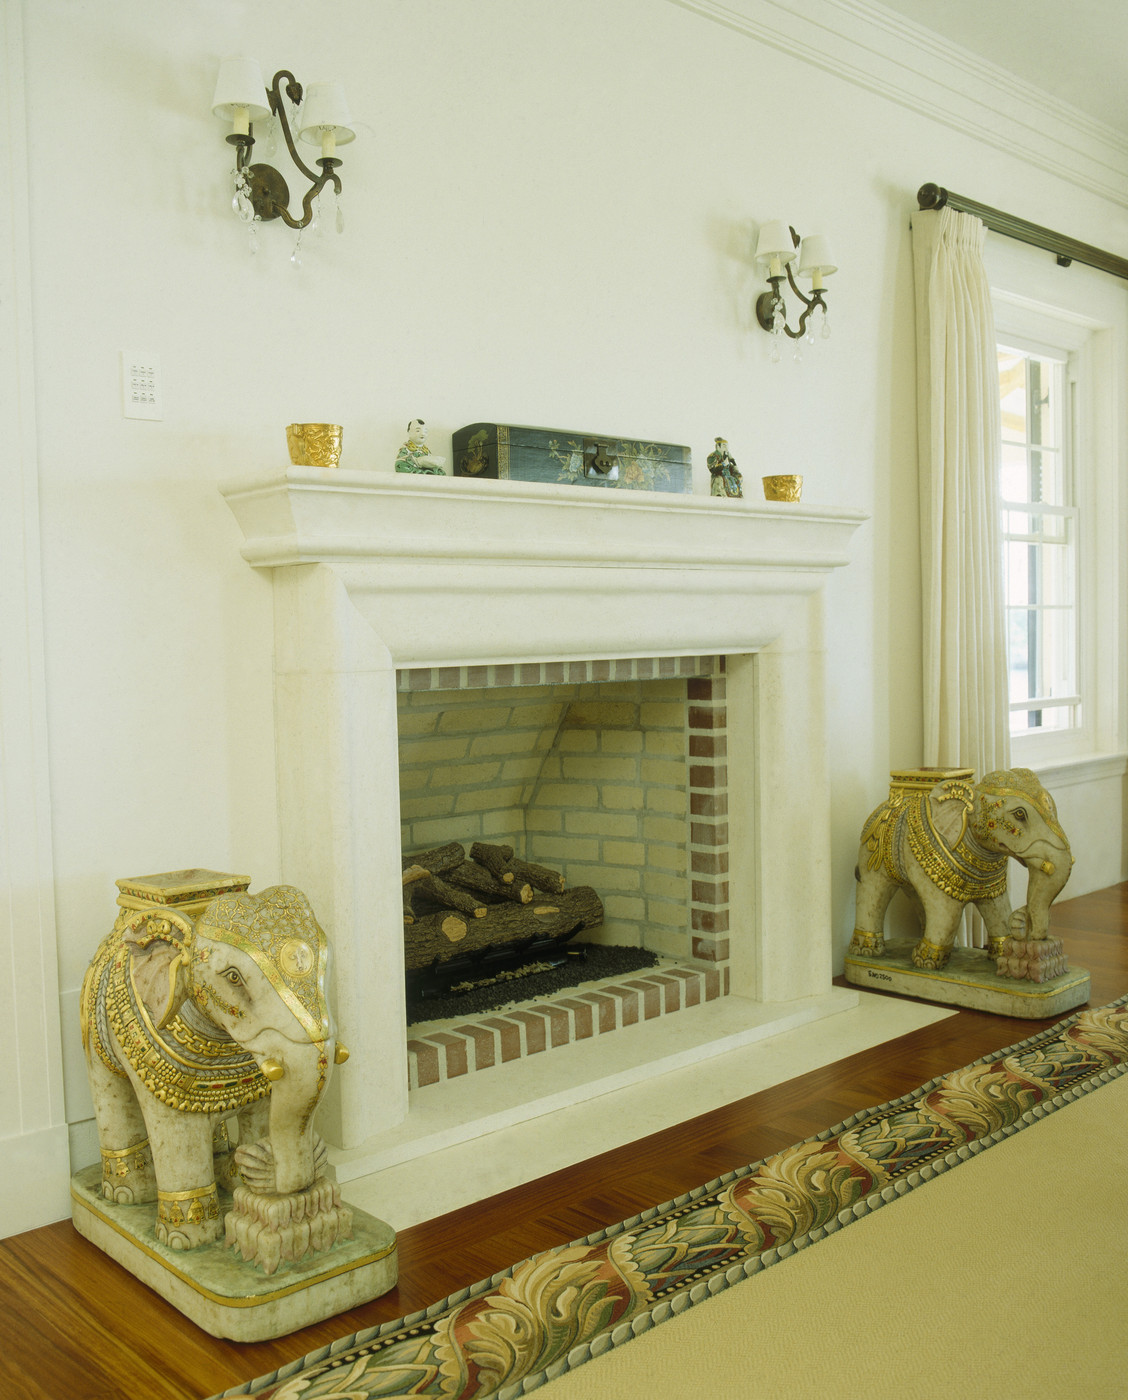 Pair of elephant statues on hearth photos design ideas Decorative hearth